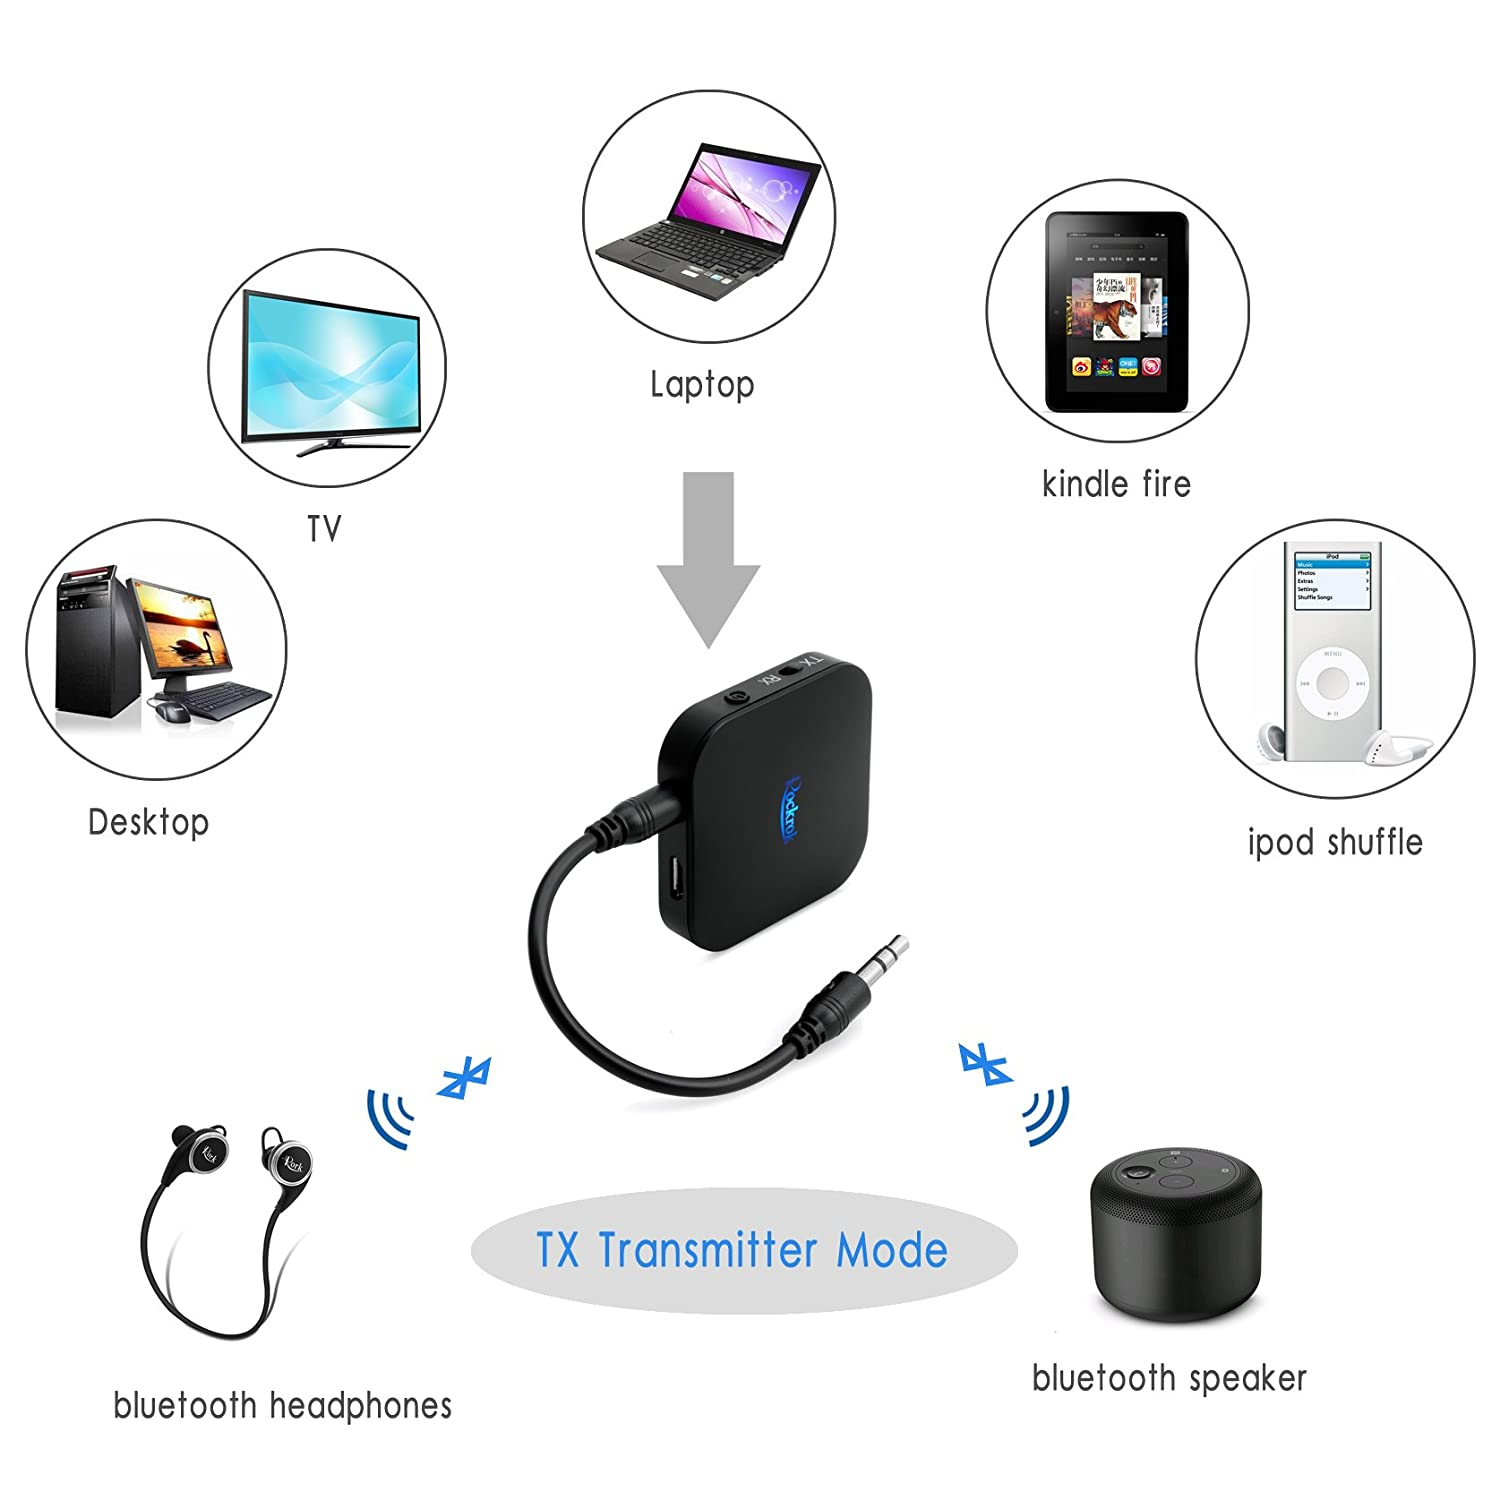 Amazon.com: Rockrok Bluetooth Transmitter and Receiver, 2-in-1 Wireless 3.5mm Audio Adapter for Headphone, Speaker, MP3/MP4, iPhone, TV Home Stereo Sound ...